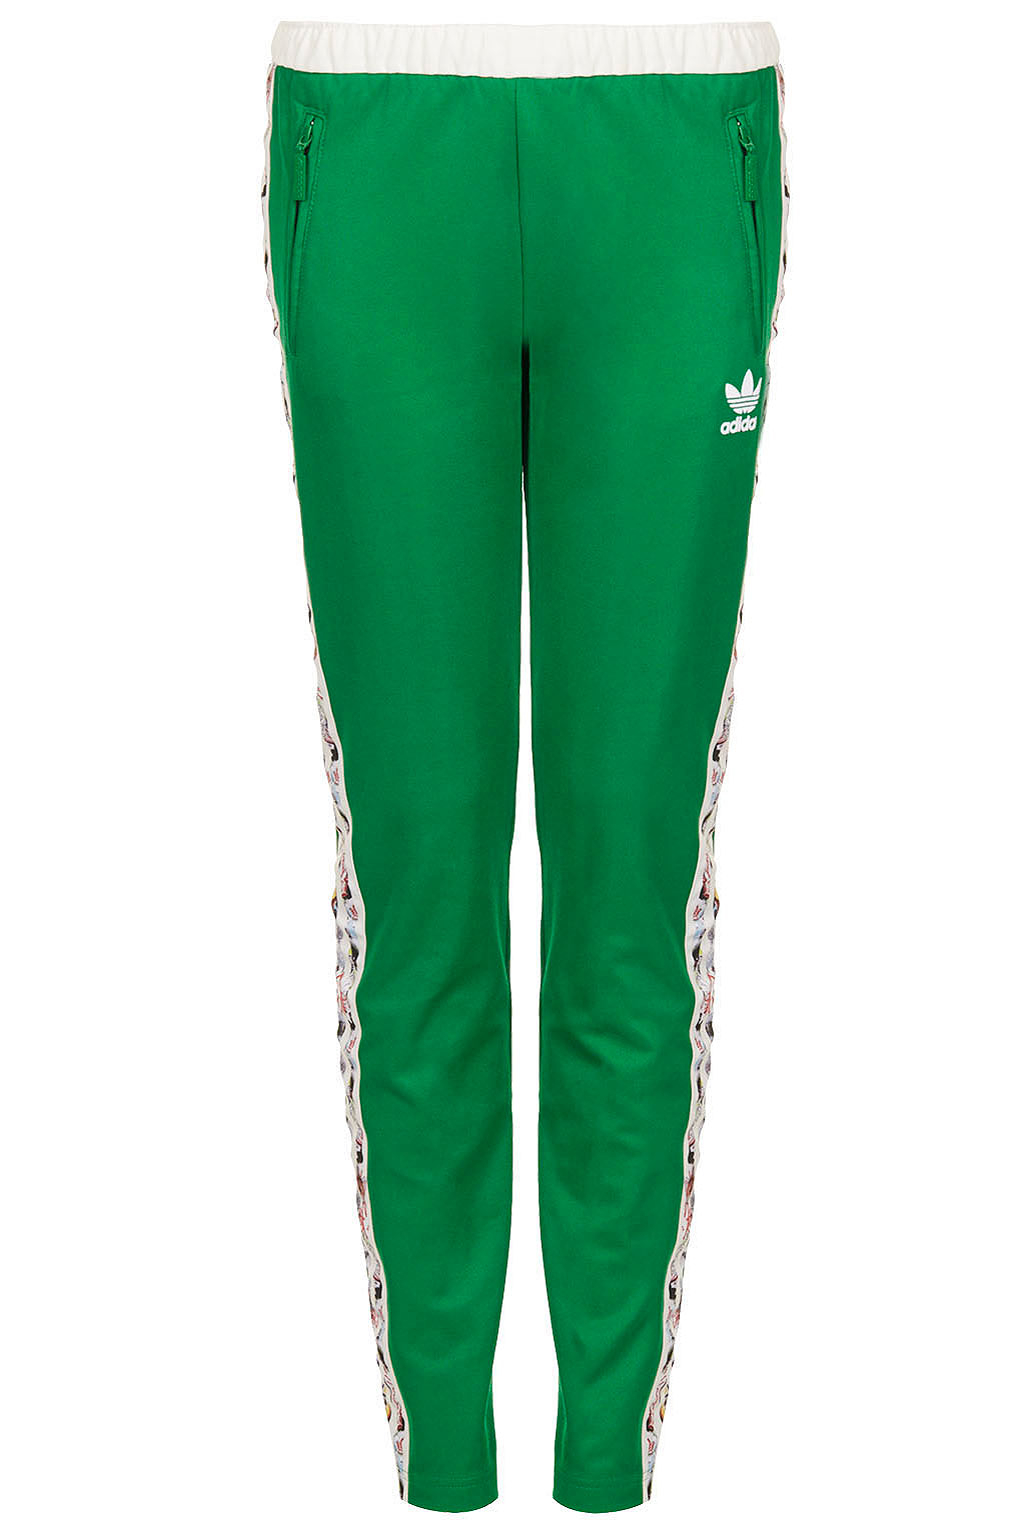 Lyst - TOPSHOP Tracksuit Bottoms By X Adidas Originals in Green c47555ad10